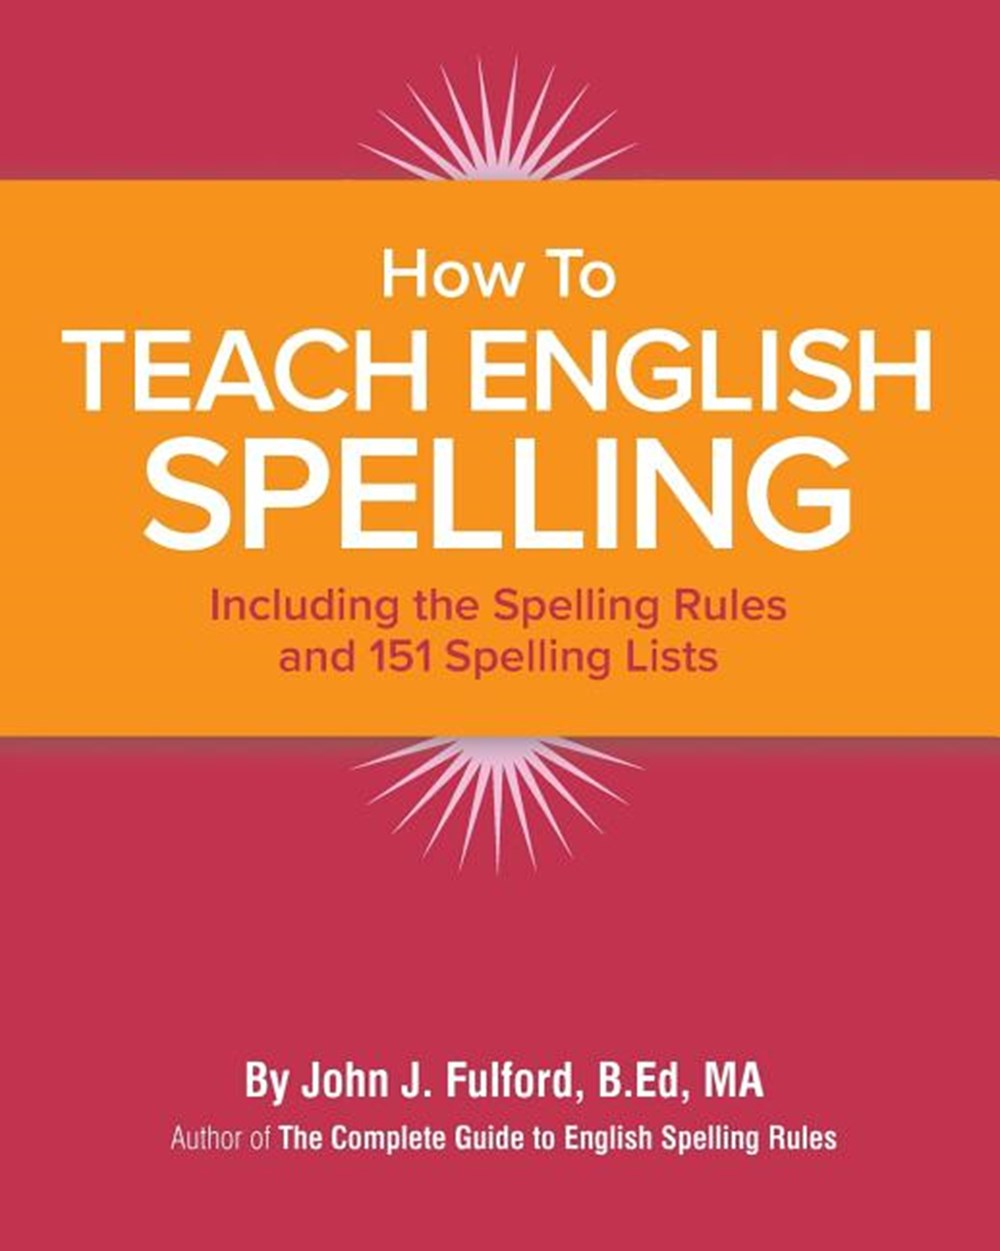 How to Teach English Spelling Including the Spelling Rules and 151 Spelling Lists